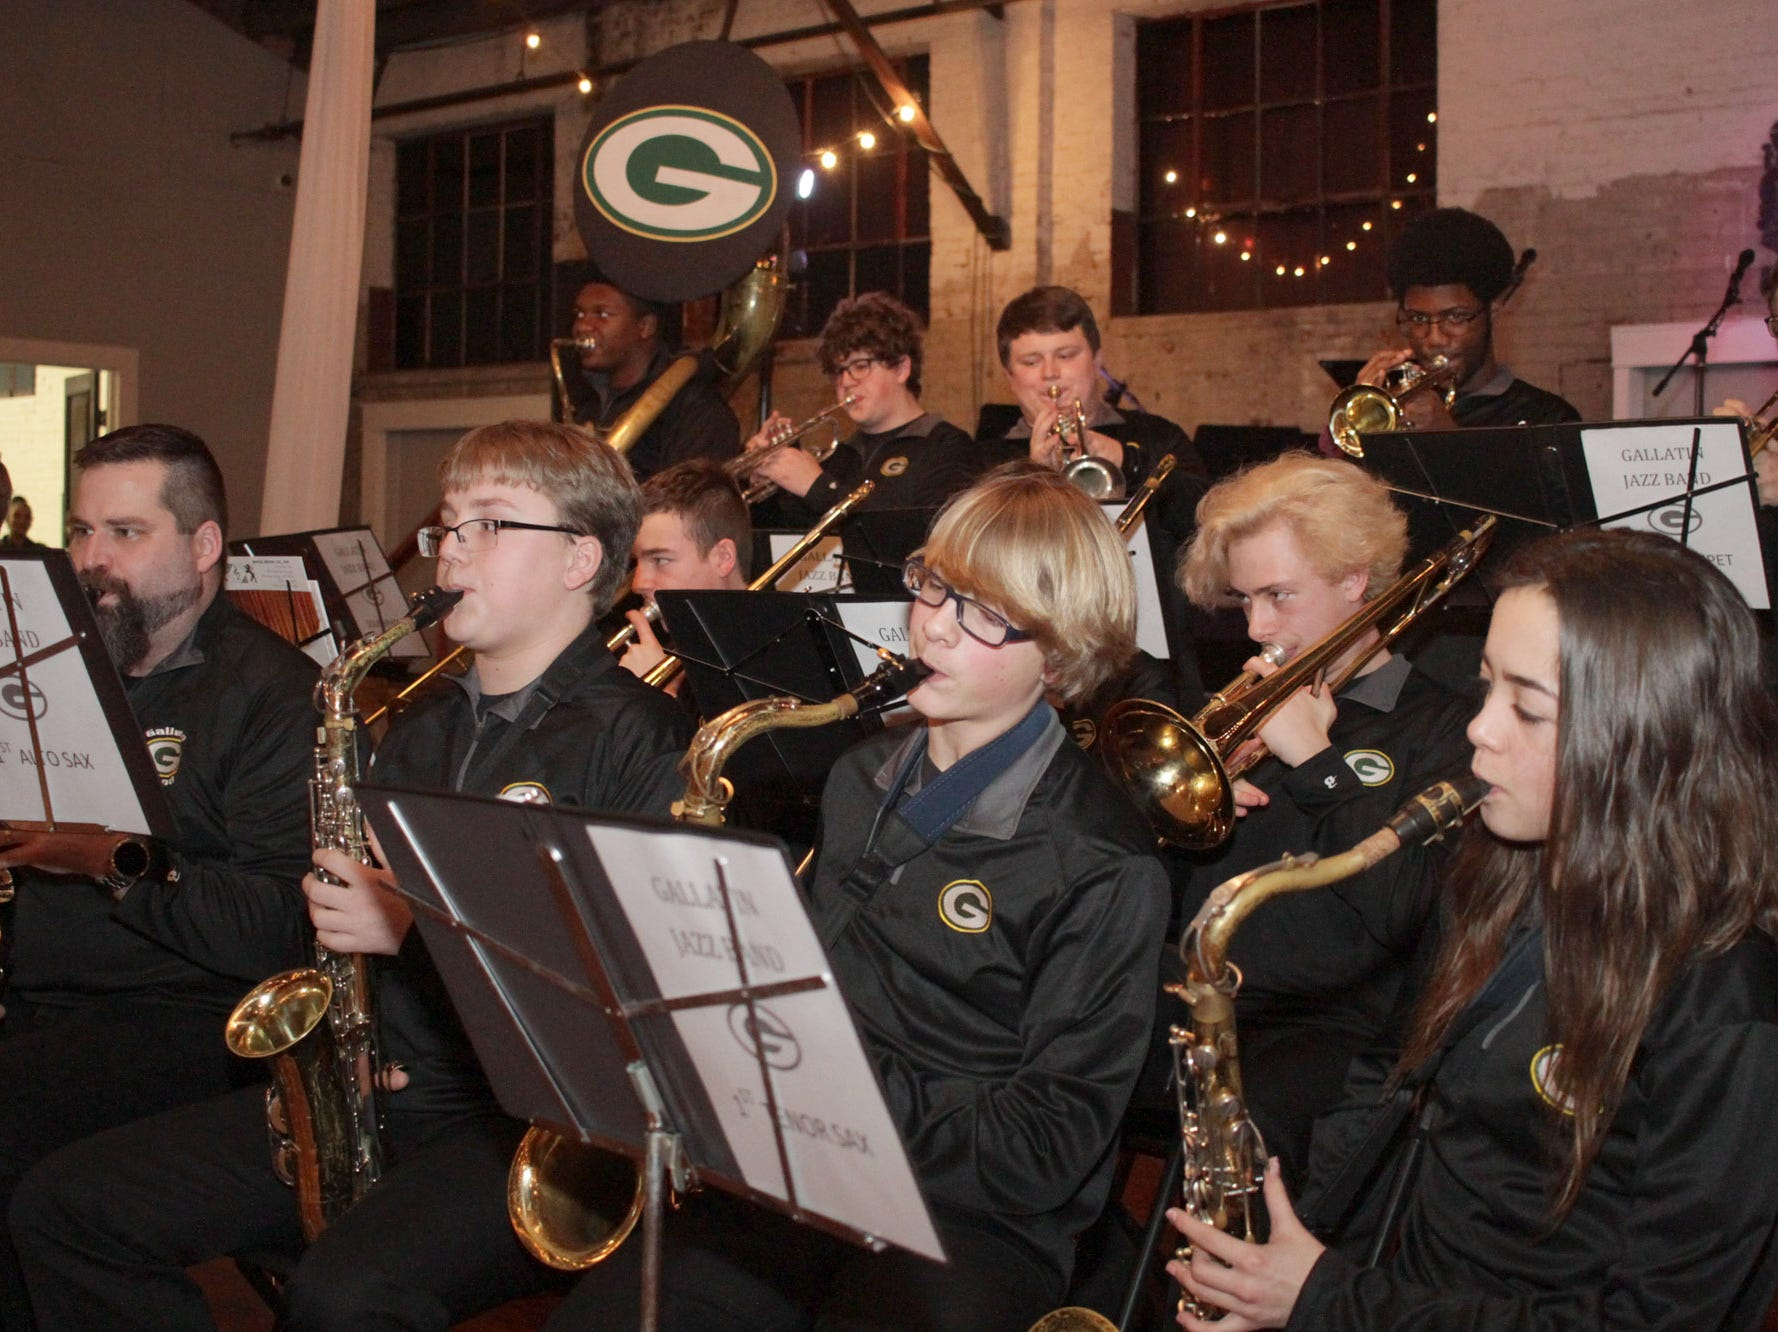 The Gallatin High School Band play at the Green and Gold Gala benefitting their school on Saturday, March 9, 2019.